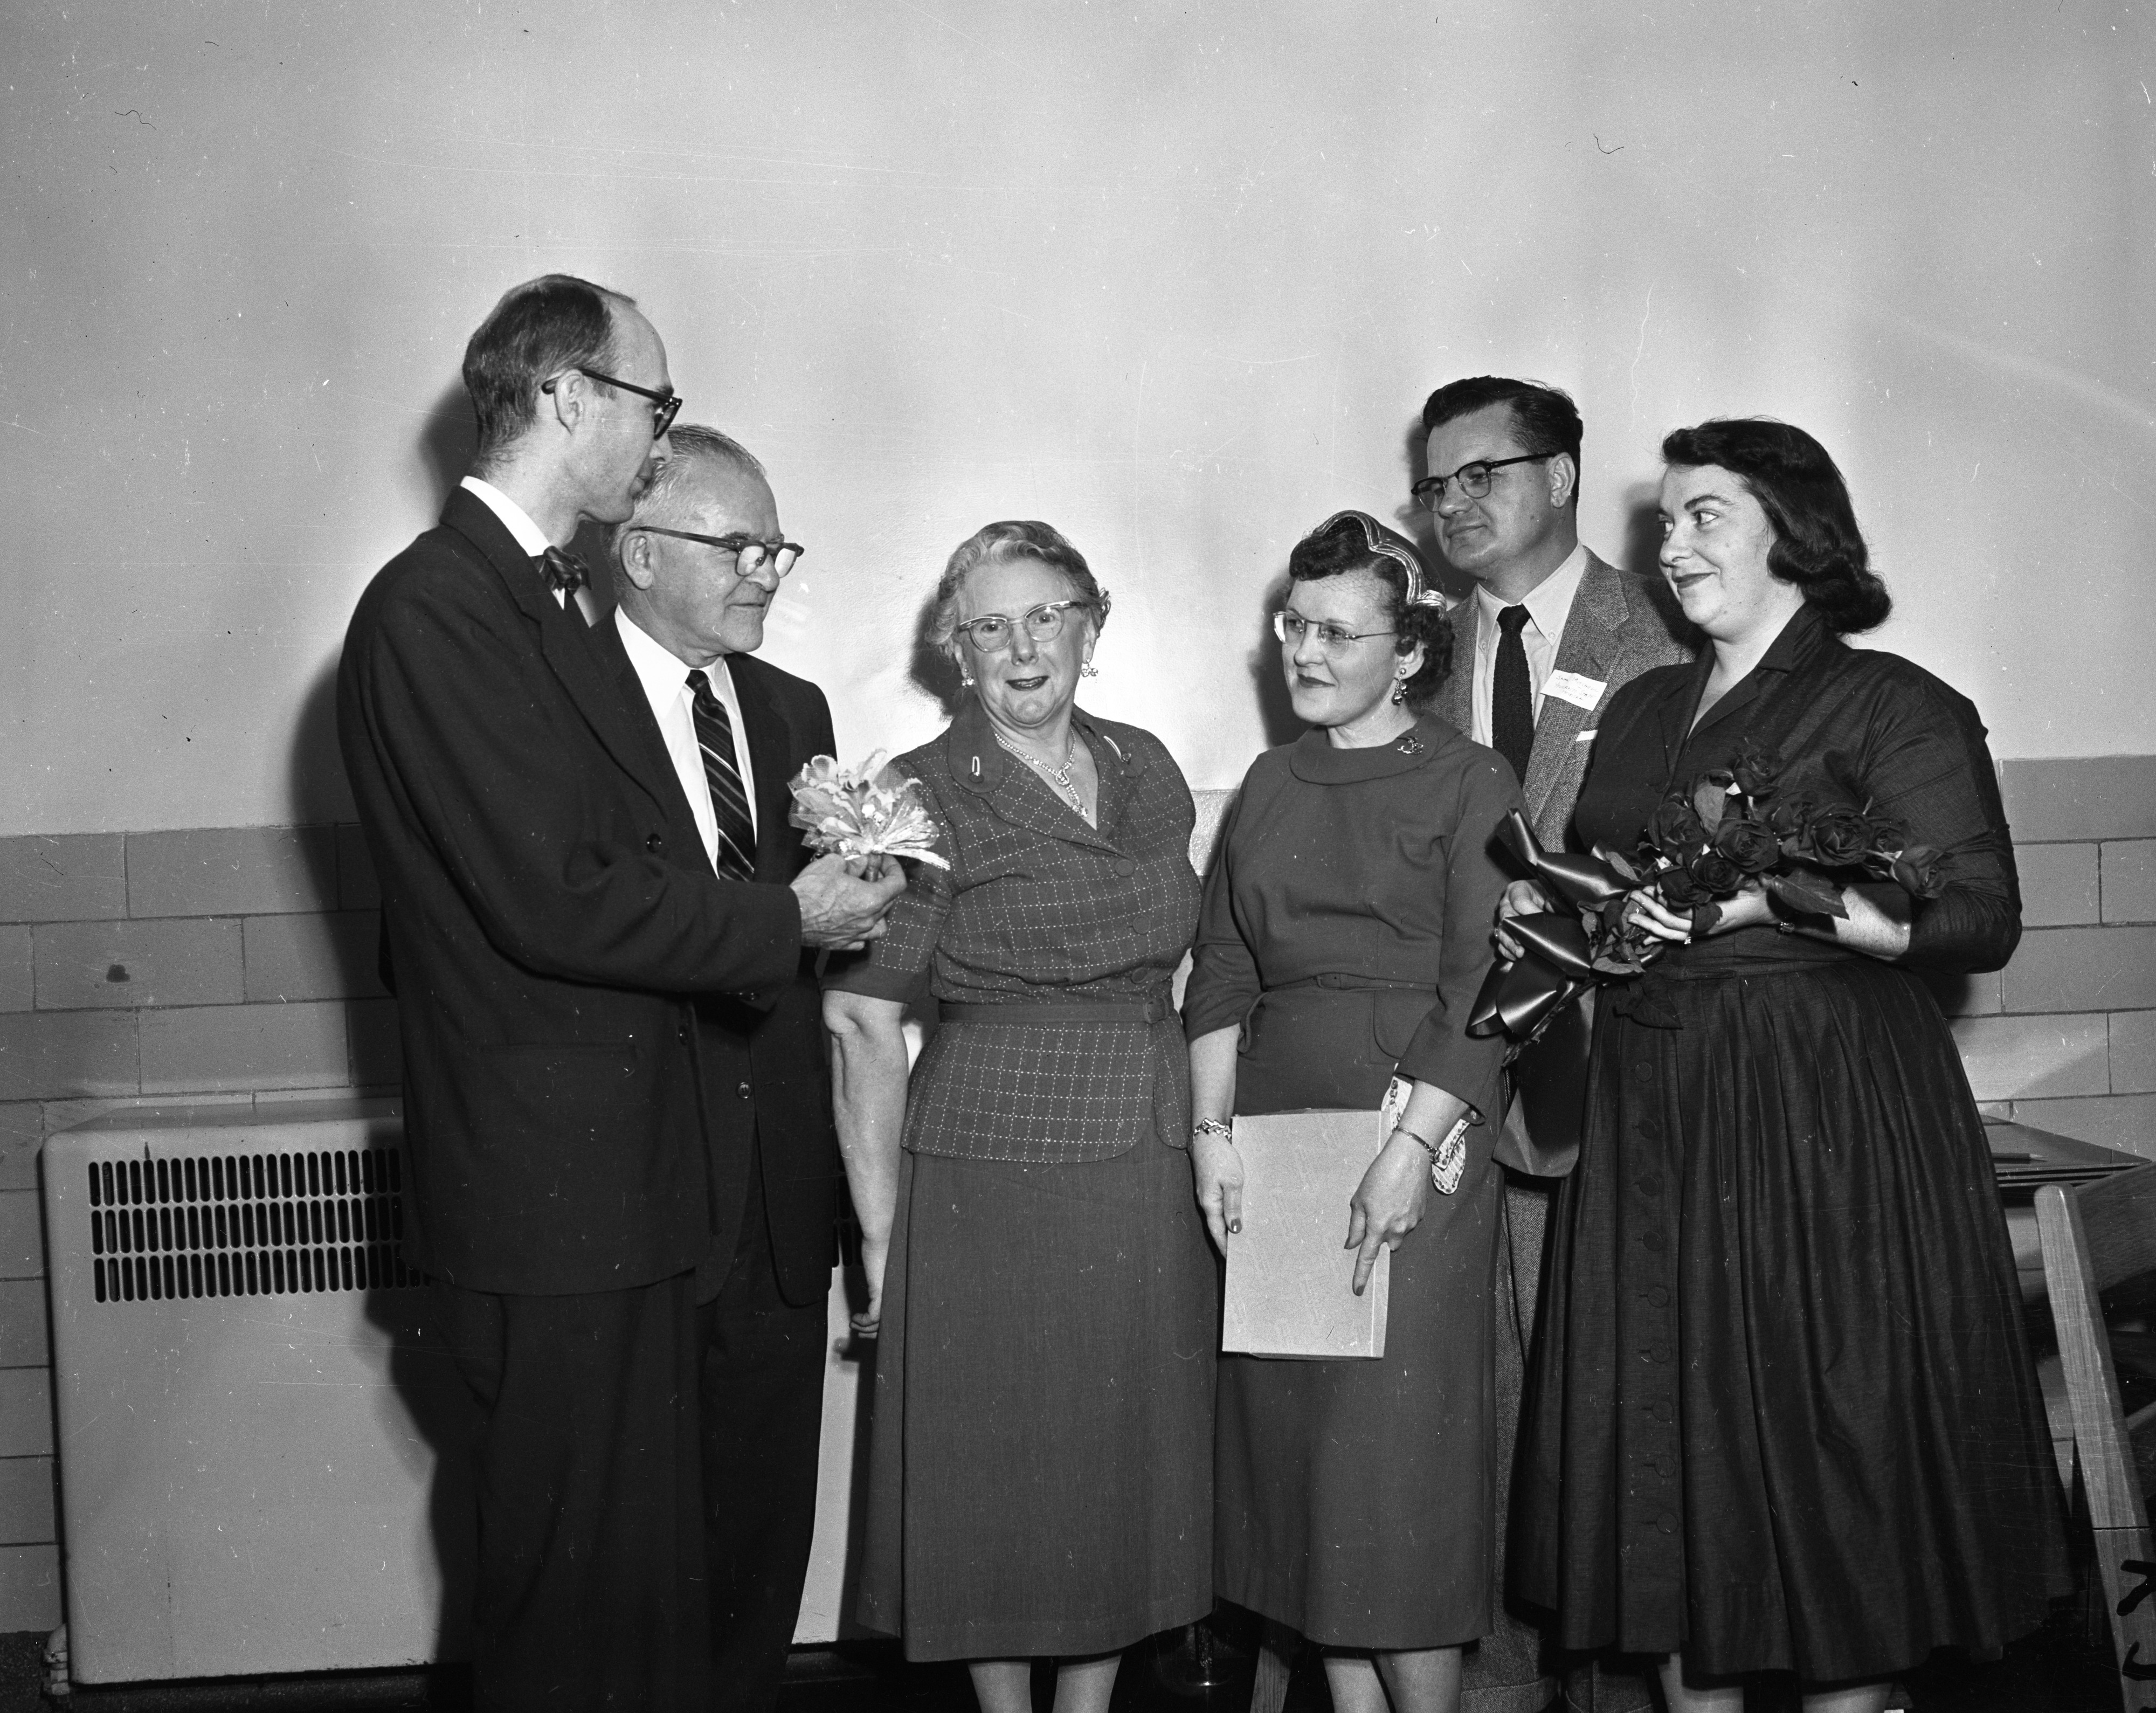 Kate Rankin honored by the Friends and Family Circle of Ypsilanti State Hospital, October, 1956 image